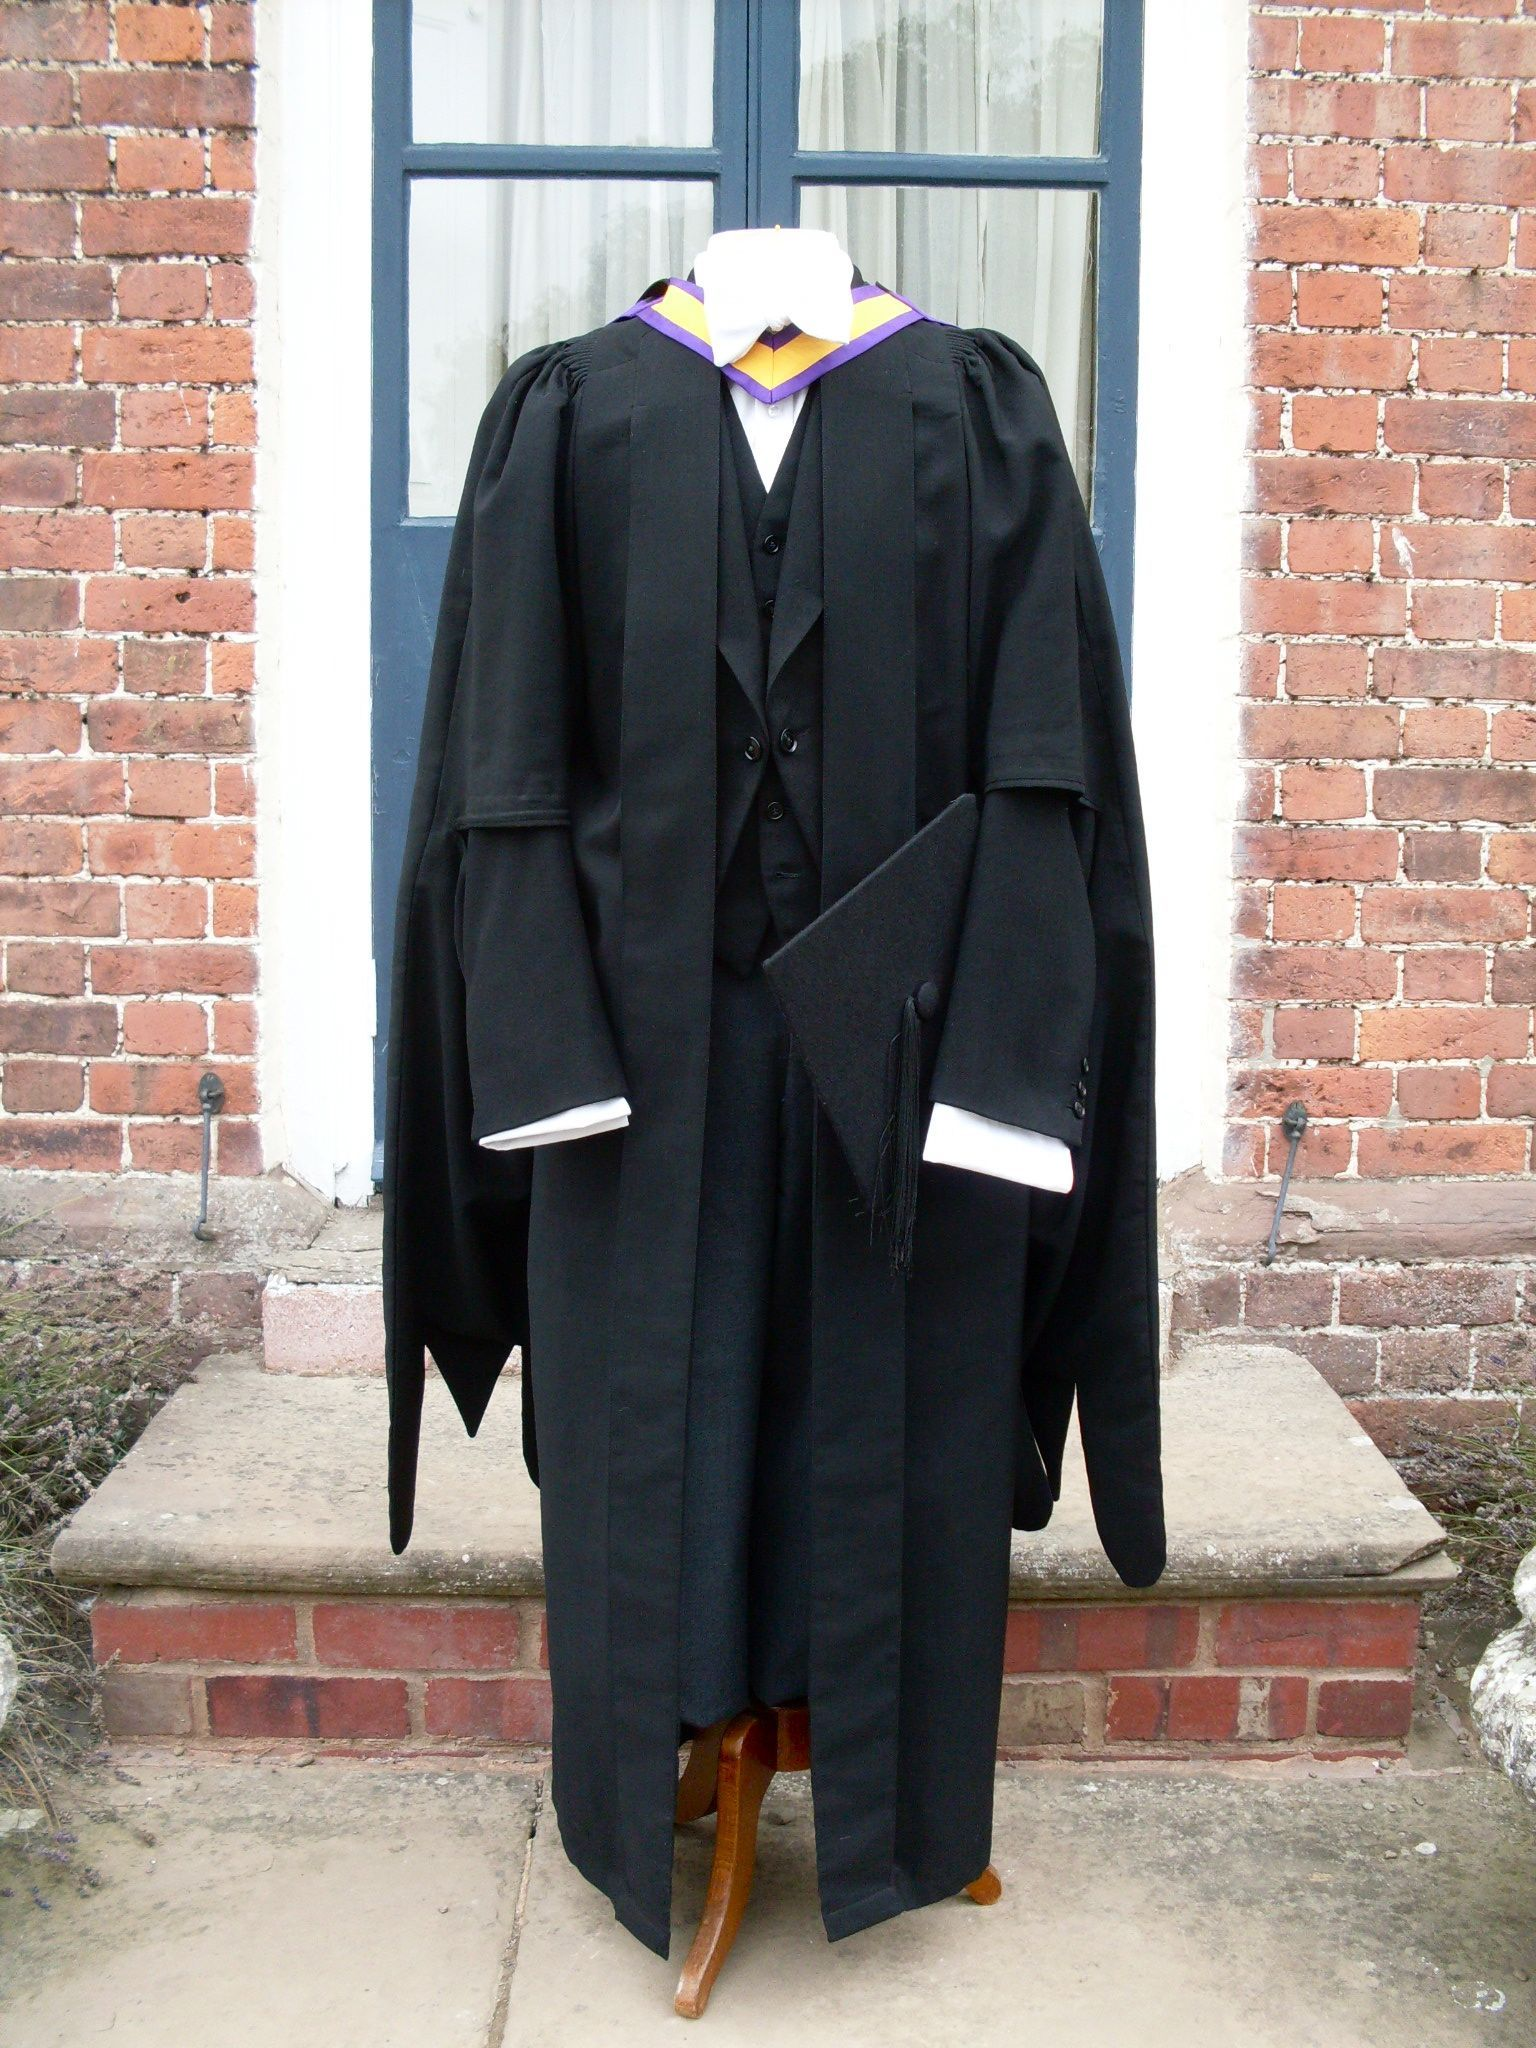 ede and ravenscroft what to wear under graduation gown